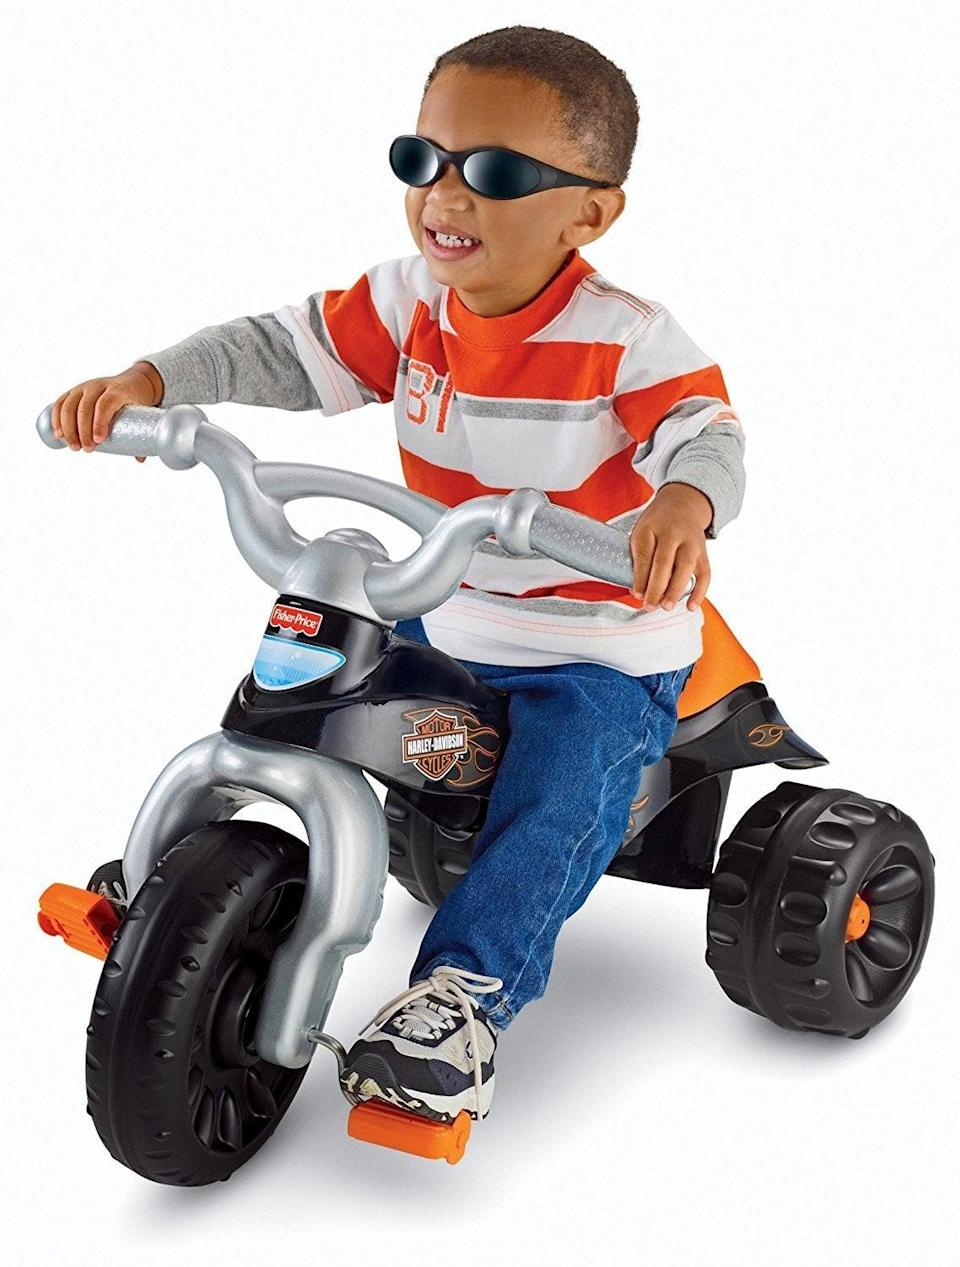 "<p>This <a href=""https://www.popsugar.com/buy/Fisher-Price-Harley-Davidson-Tough-Trike-329360?p_name=Fisher-Price%20Harley-Davidson%20Tough%20Trike&retailer=amazon.com&pid=329360&price=39&evar1=moms%3Aus&evar9=25800161&evar98=https%3A%2F%2Fwww.popsugar.com%2Fphoto-gallery%2F25800161%2Fimage%2F44870310%2FFisher-Price-Harley-Davidson-Tough-Trike&list1=gifts%2Choliday%2Cgift%20guide%2Cparenting%2Ckid%20shopping%2Choliday%20for%20kids%2Cgifts%20for%20toddlers%2Cbest%20of%202019&prop13=api&pdata=1"" class=""link rapid-noclick-resp"" rel=""nofollow noopener"" target=""_blank"" data-ylk=""slk:Fisher-Price Harley-Davidson Tough Trike"">Fisher-Price Harley-Davidson Tough Trike</a> ($39) includes durable tires and easy-grip handlebars.</p>"